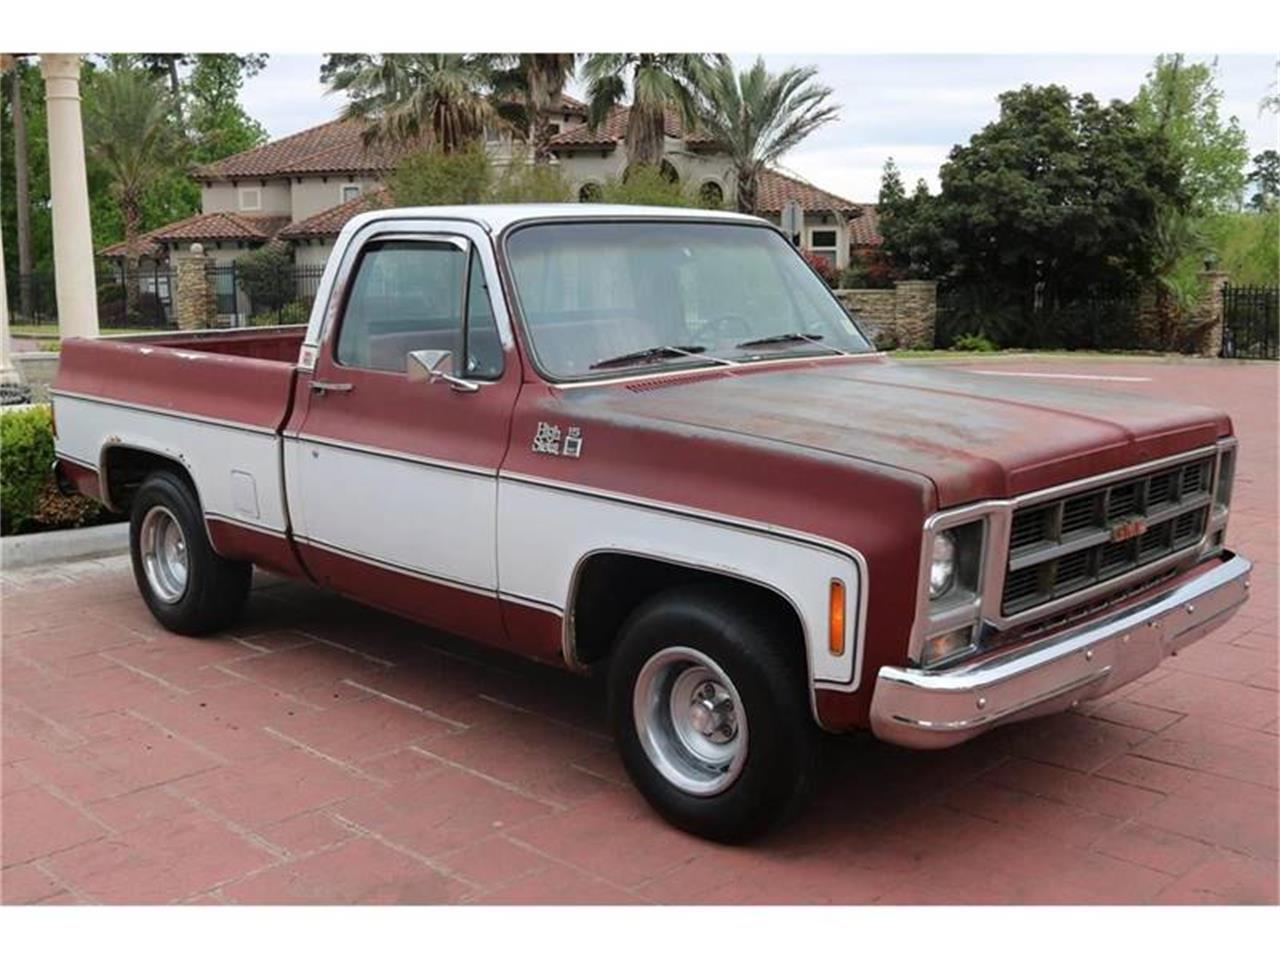 for sale 1979 gmc c k 1500 in conroe, texas cars - conroe, tx at geebo